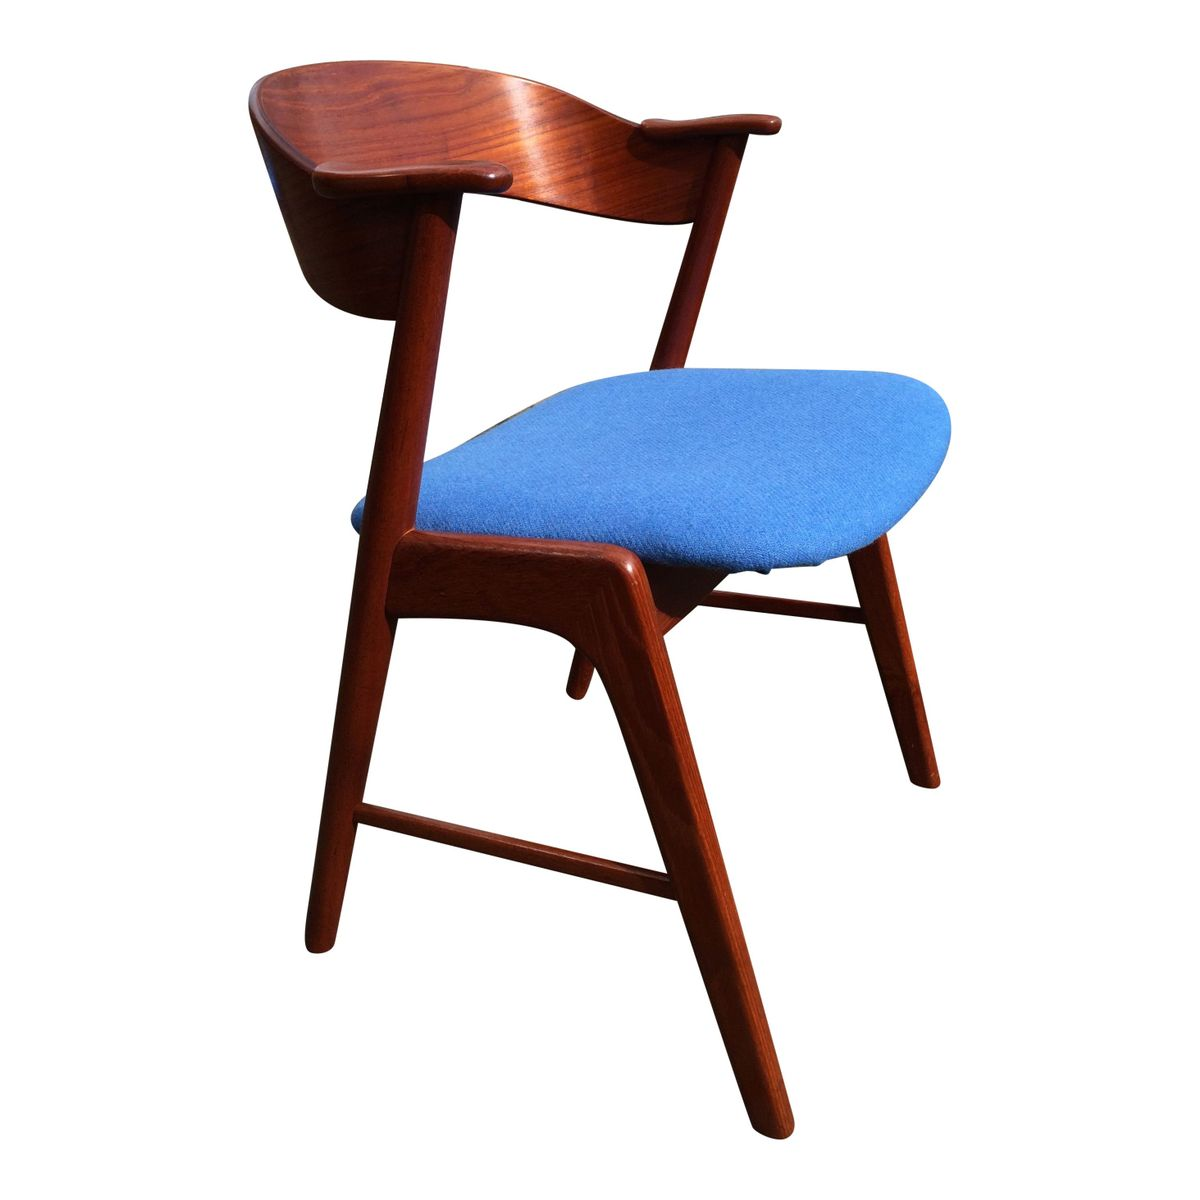 Teak chairs by kai kristiansen for korup stolefabrik set of 4 for sale at pamono - Kai kristiansen chairs ...